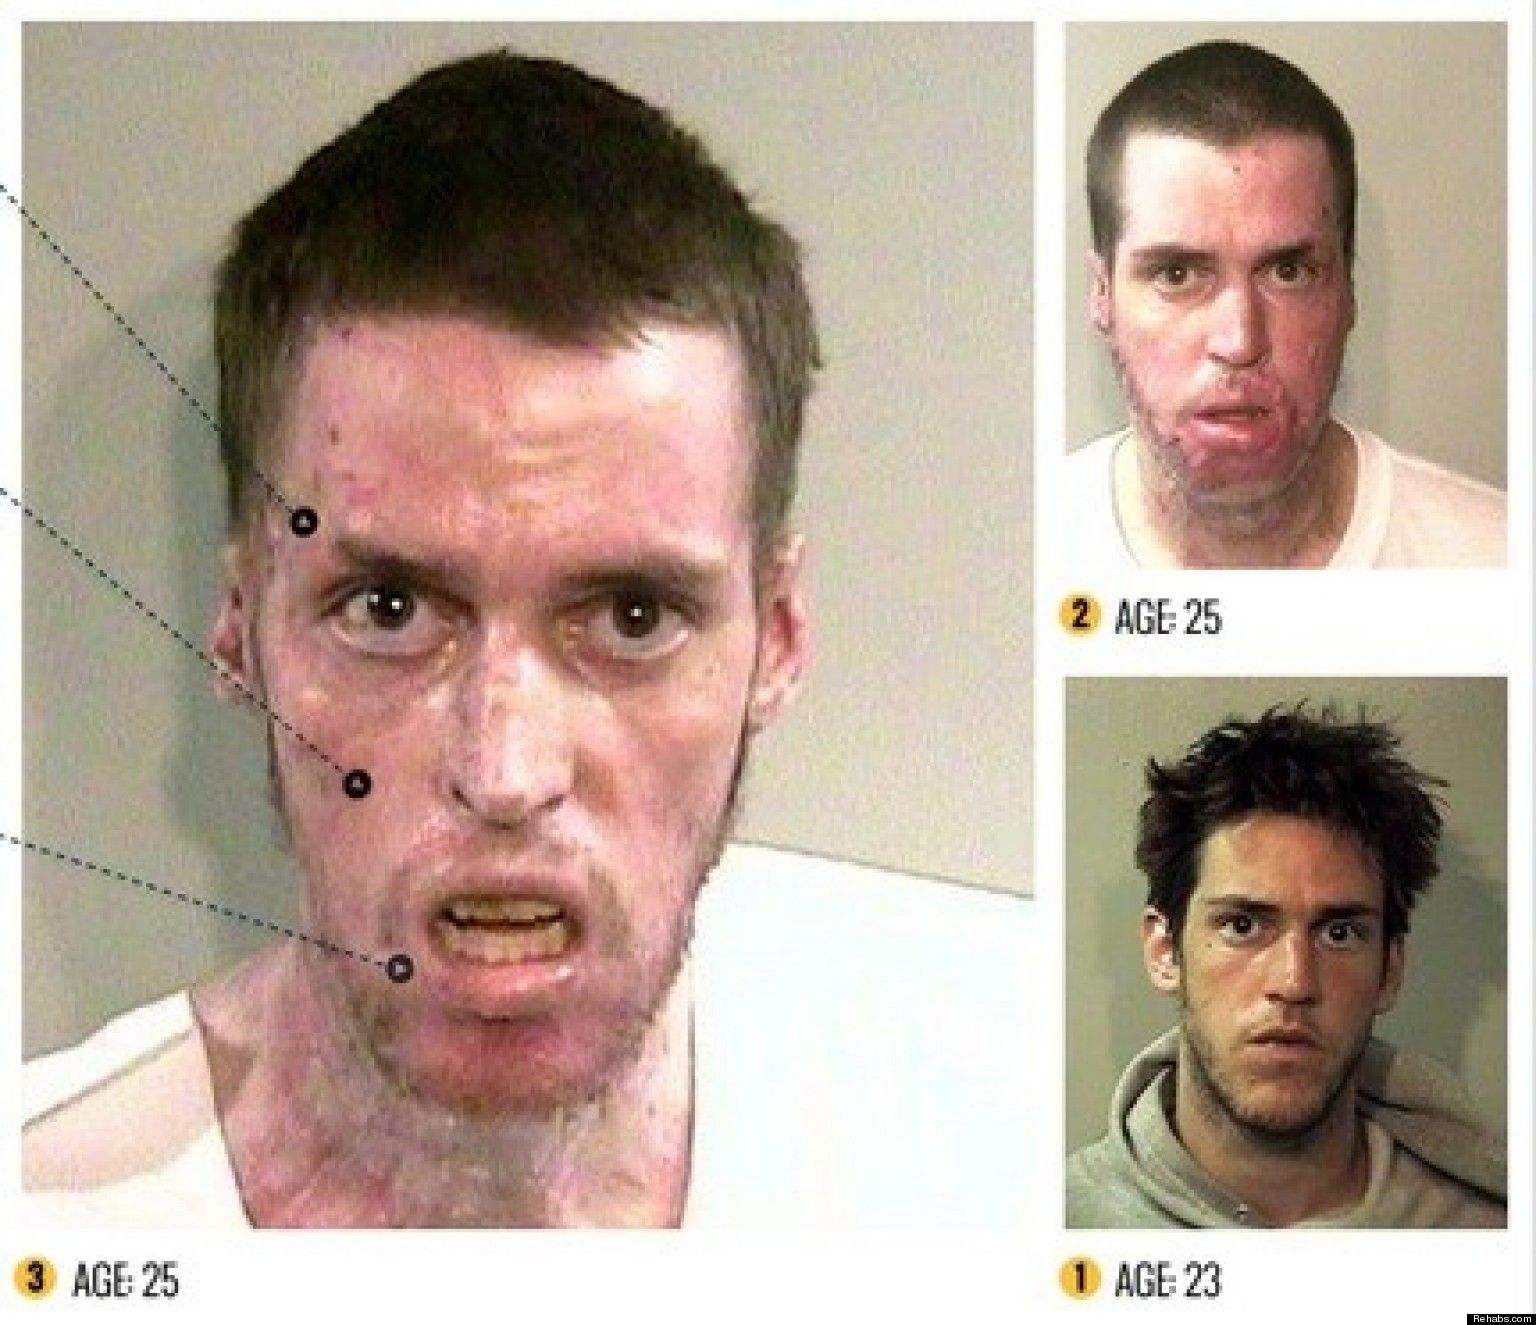 Crystal Meth Faces Before and After If you are considering a family dentist click on the image to learn more.